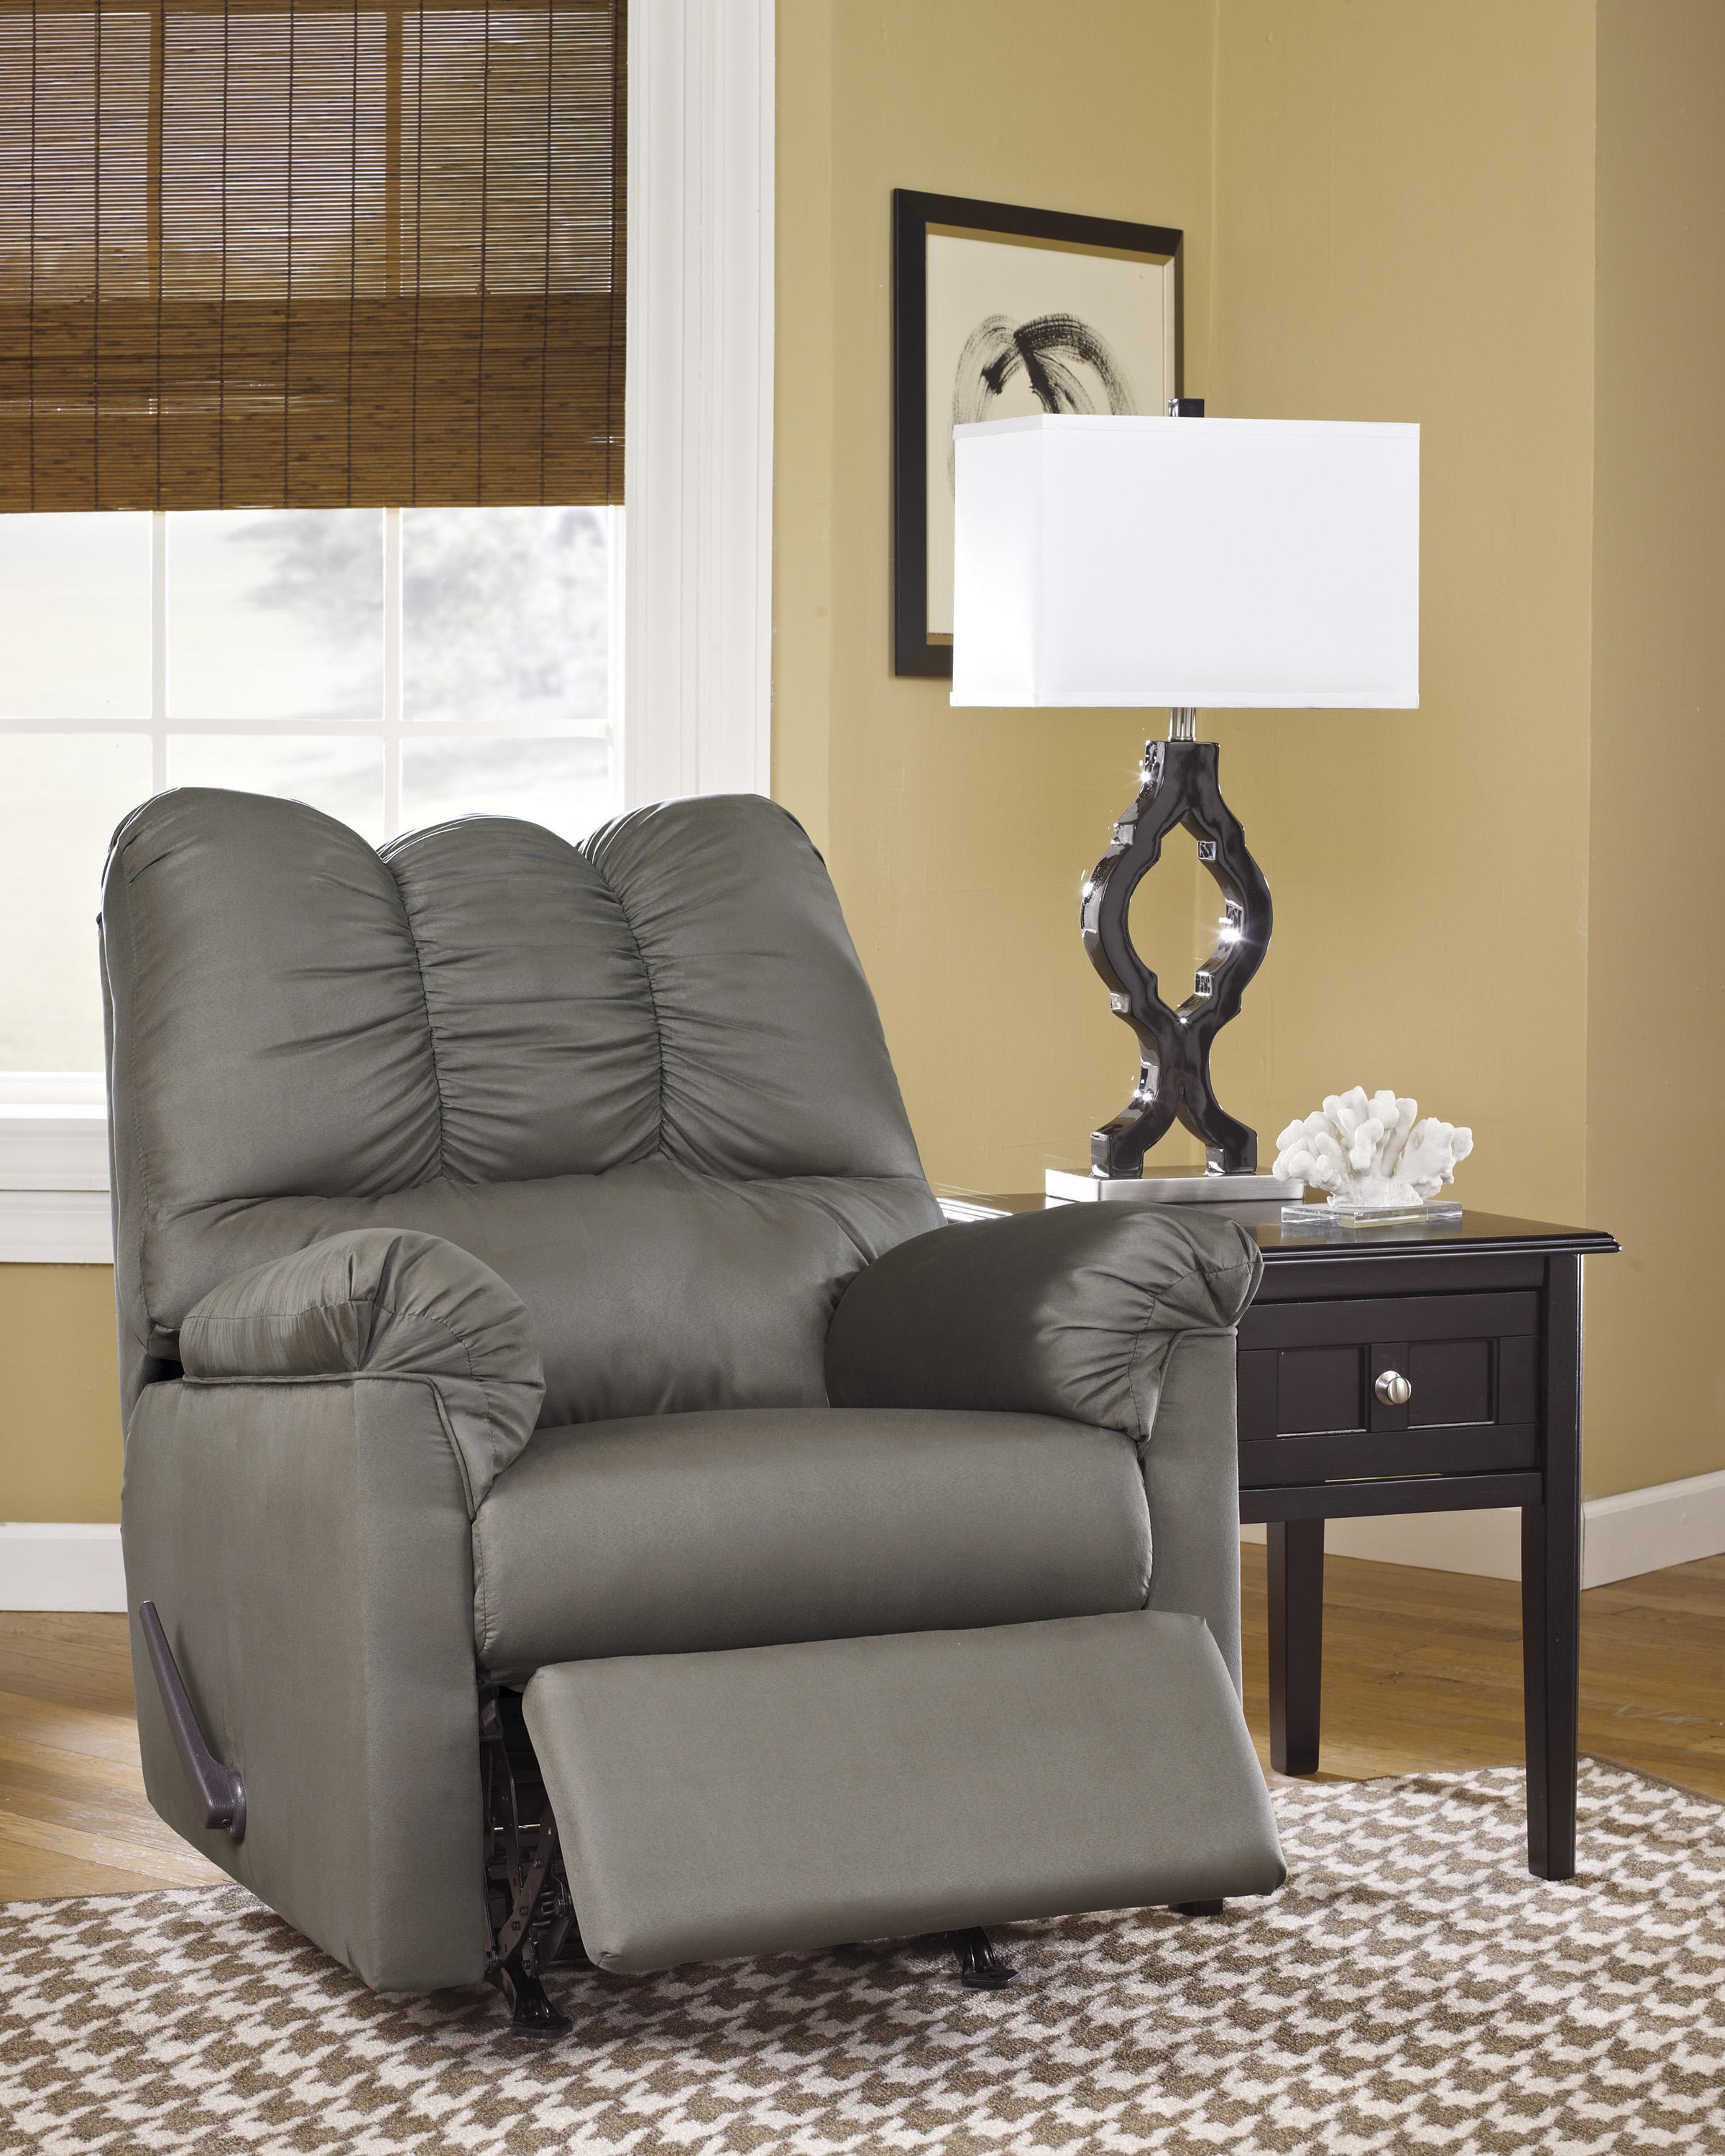 Darcy Cobblestone Rocker Recliner  / $11.99 A Week